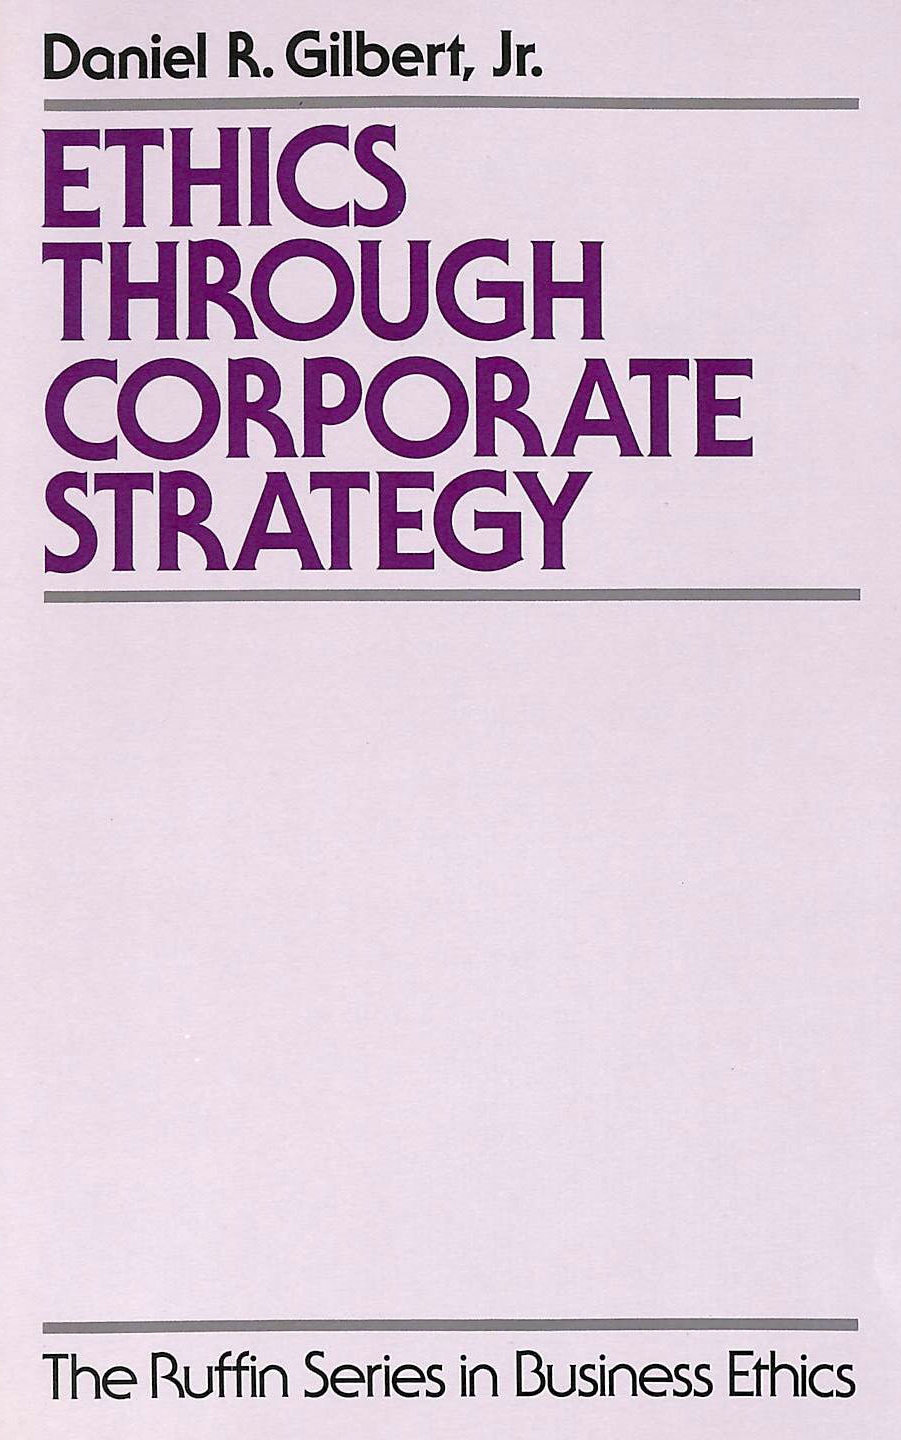 Image for Ethics Through Corporate Strategy (The Ruffin Series in Business Ethics)